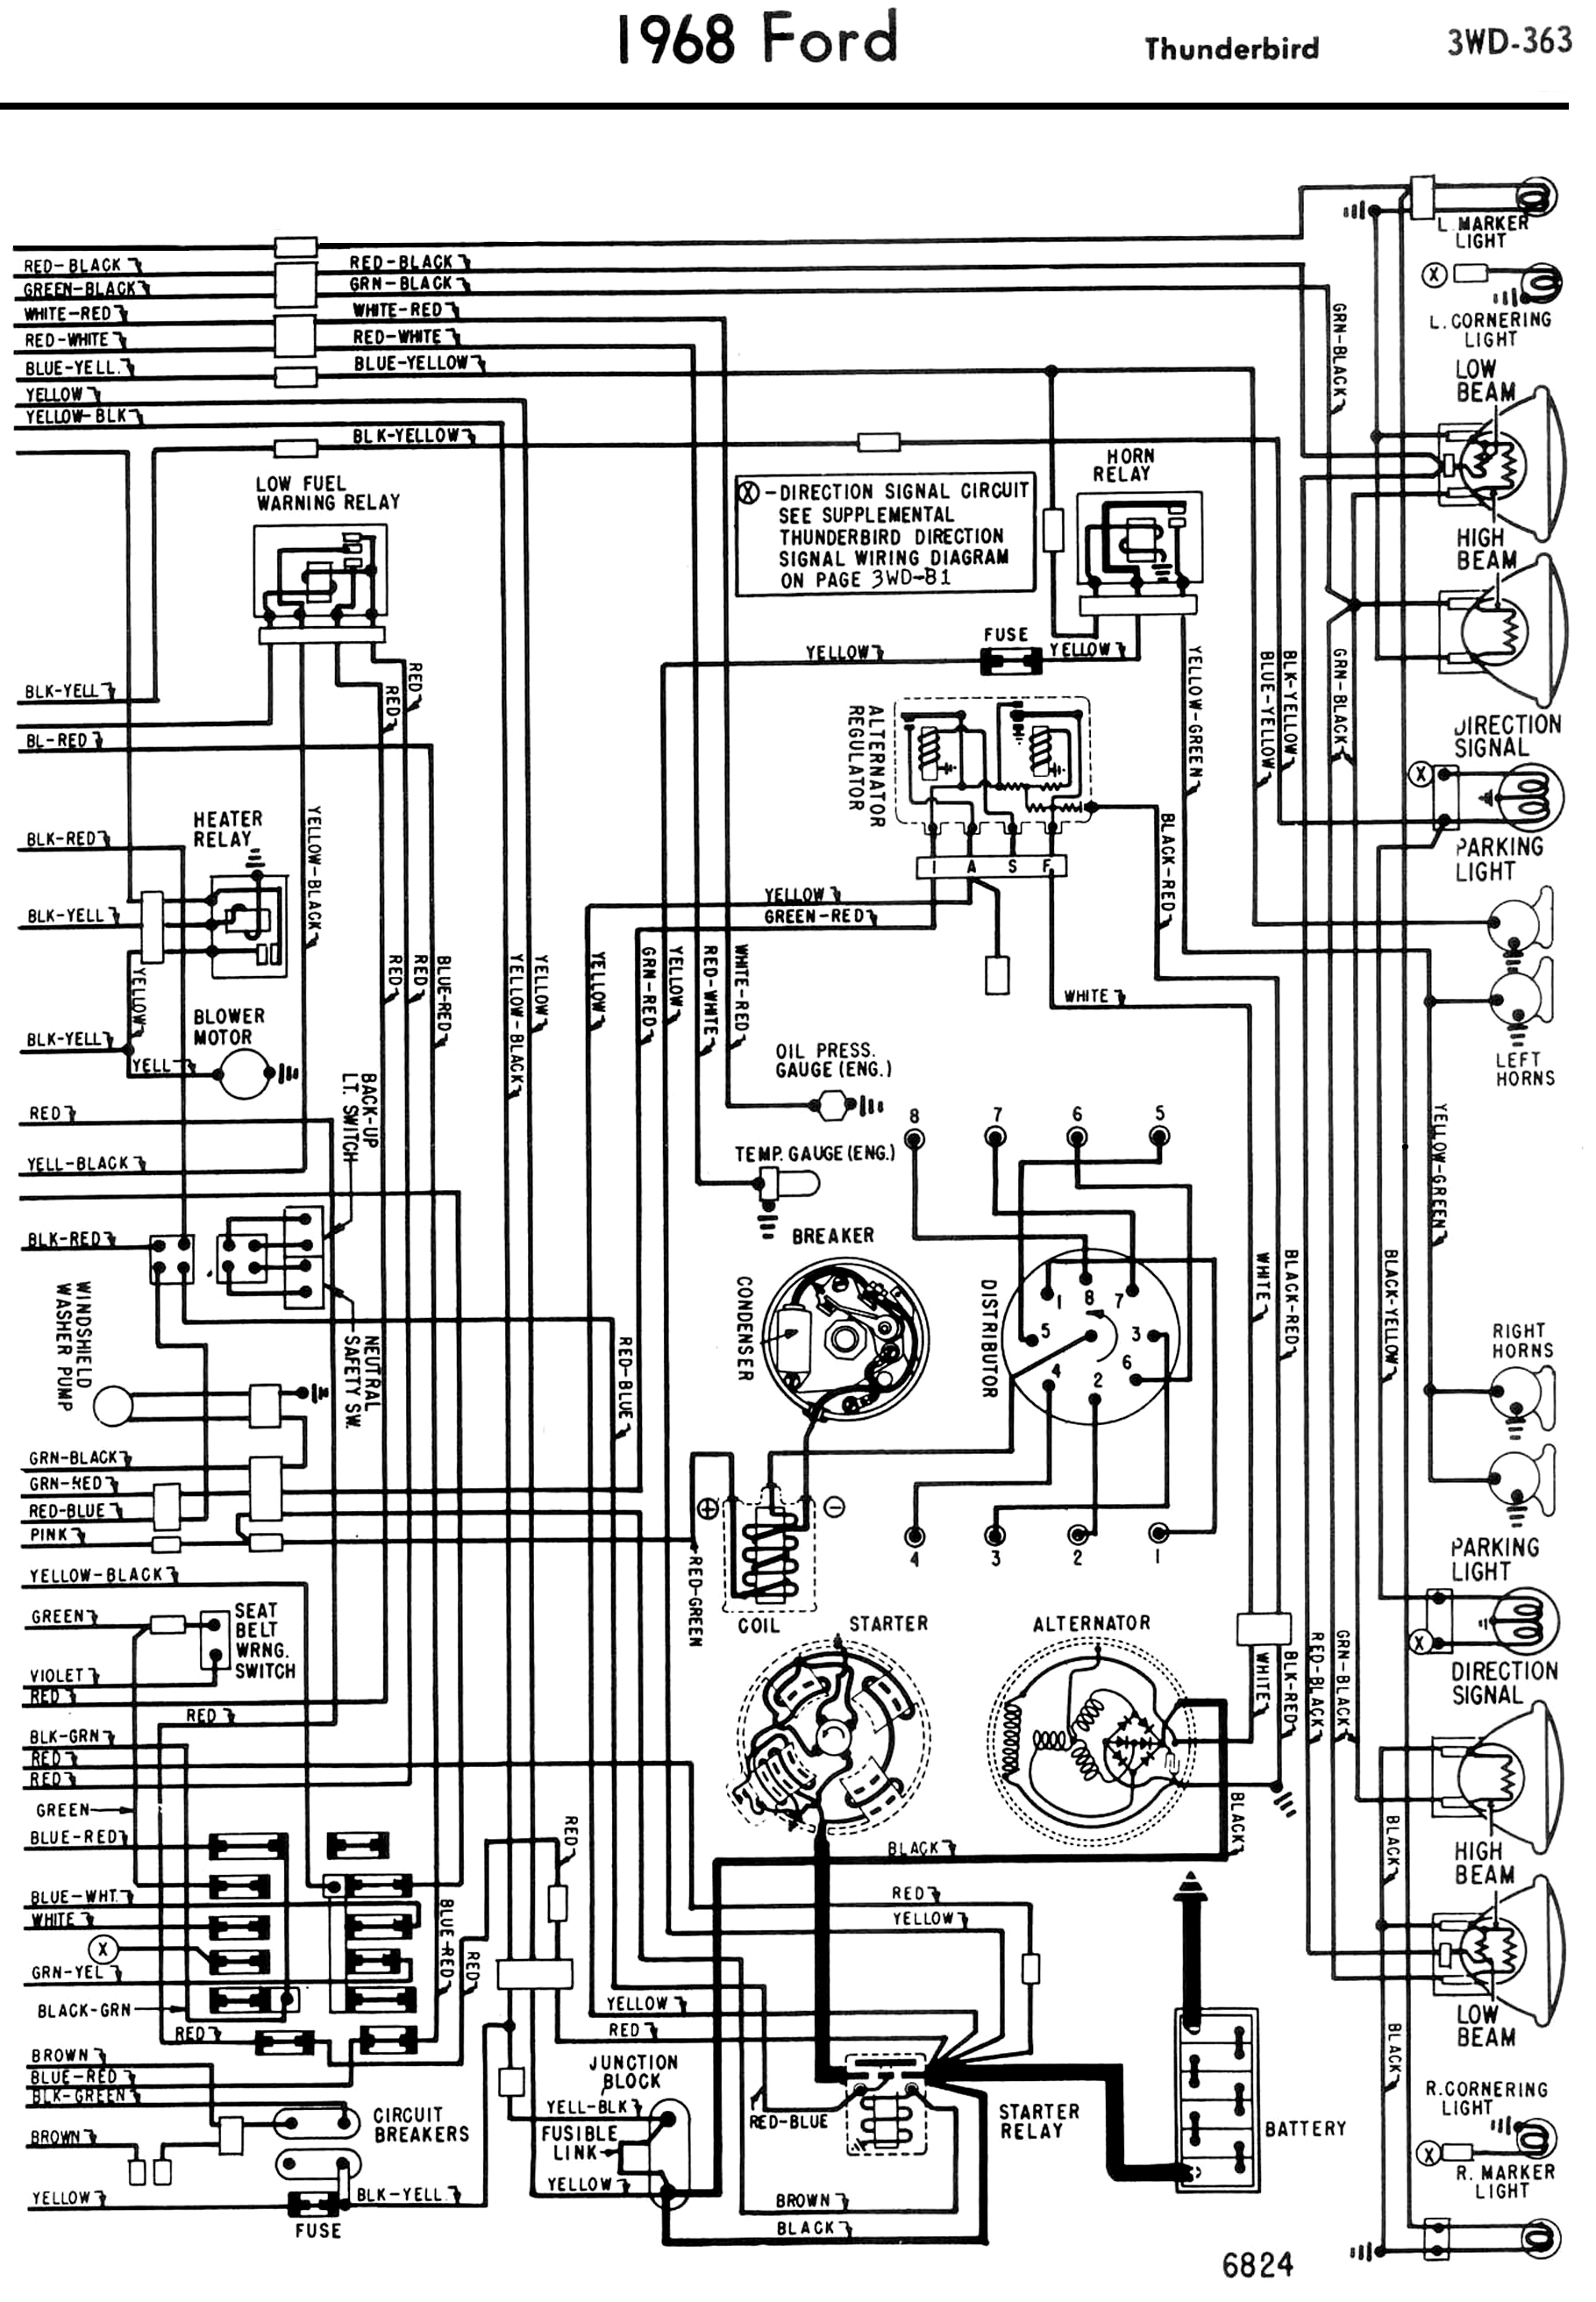 Thunderbird Tail Light Wiring - Wiring Diagrams Lose - Stop/turn/tail Light Wiring Diagram